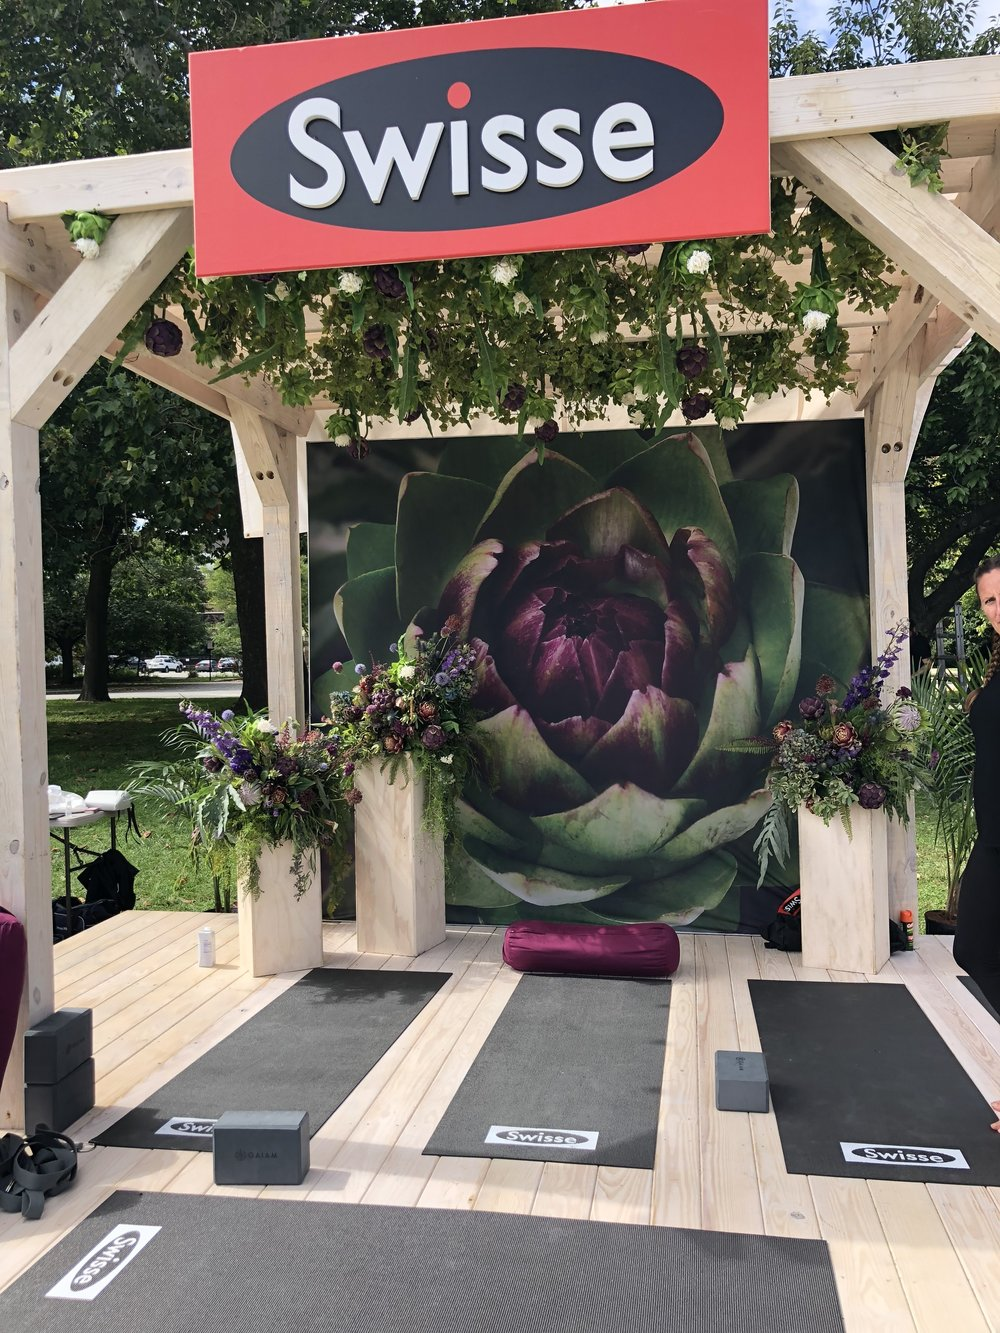 Swisse's #DestinationHappiness at Wanderlust 108.